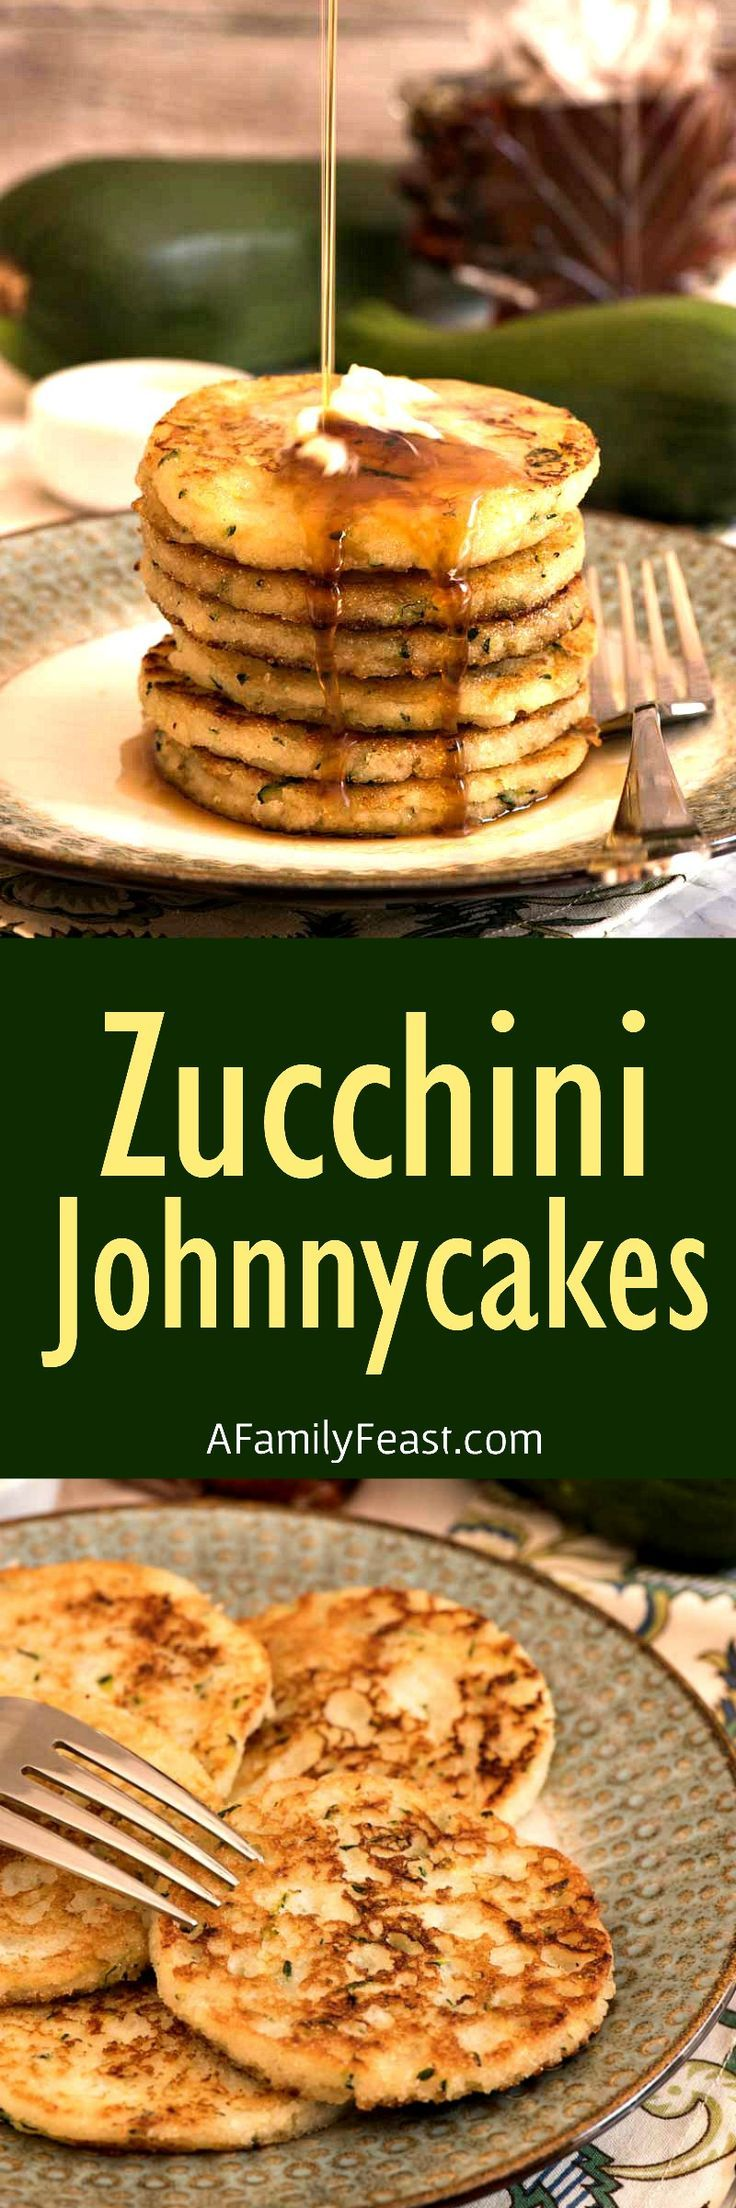 Our Zucchini Johnnycakes are a delicious change-up to a New England  classic recipe! Plus – they're another great way to cook with your  summer garden zucchini.